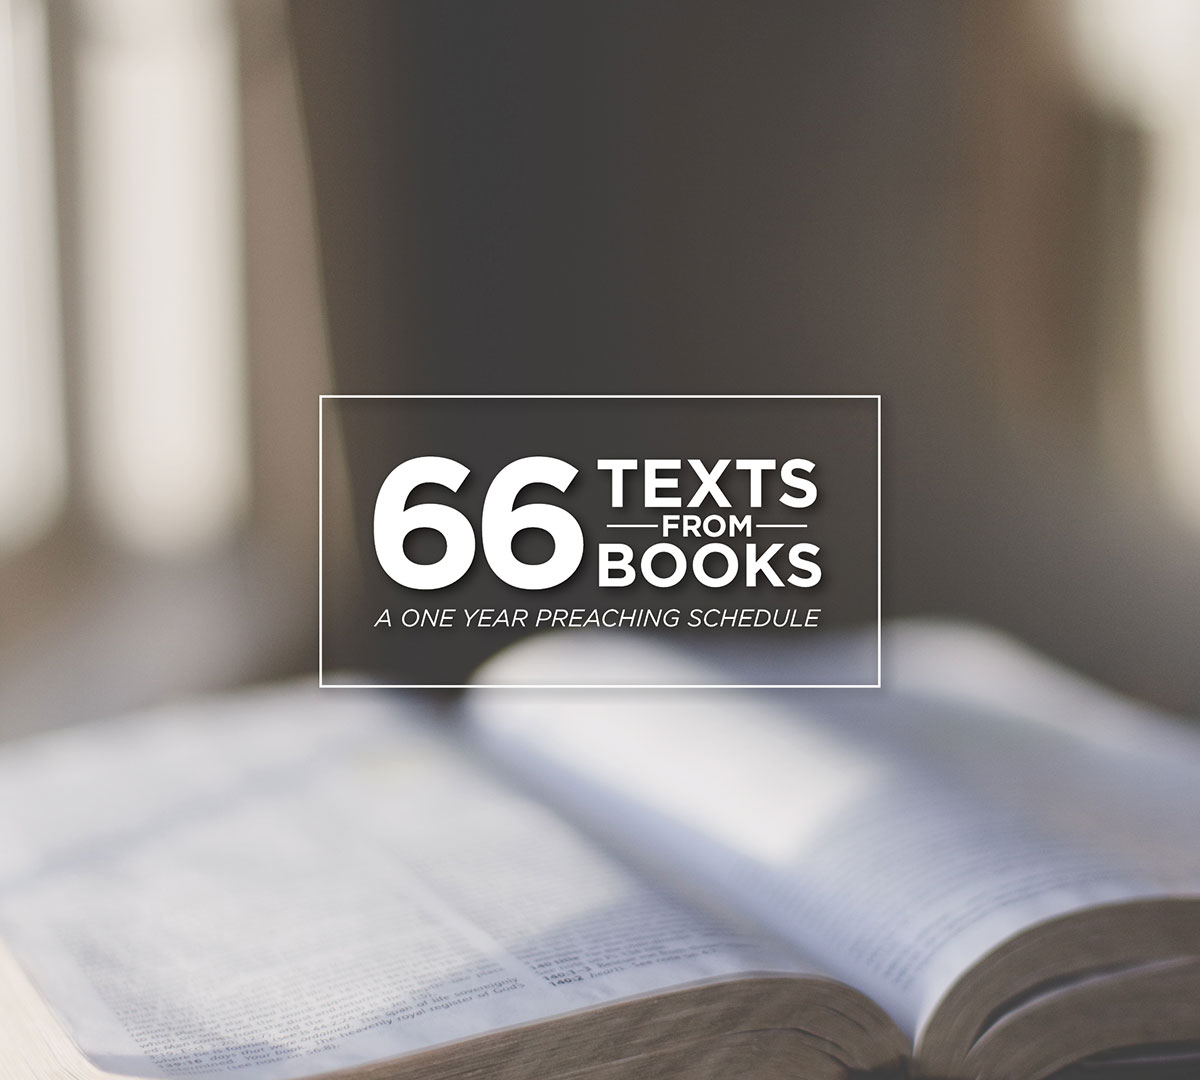 66 Texts from 66 Books